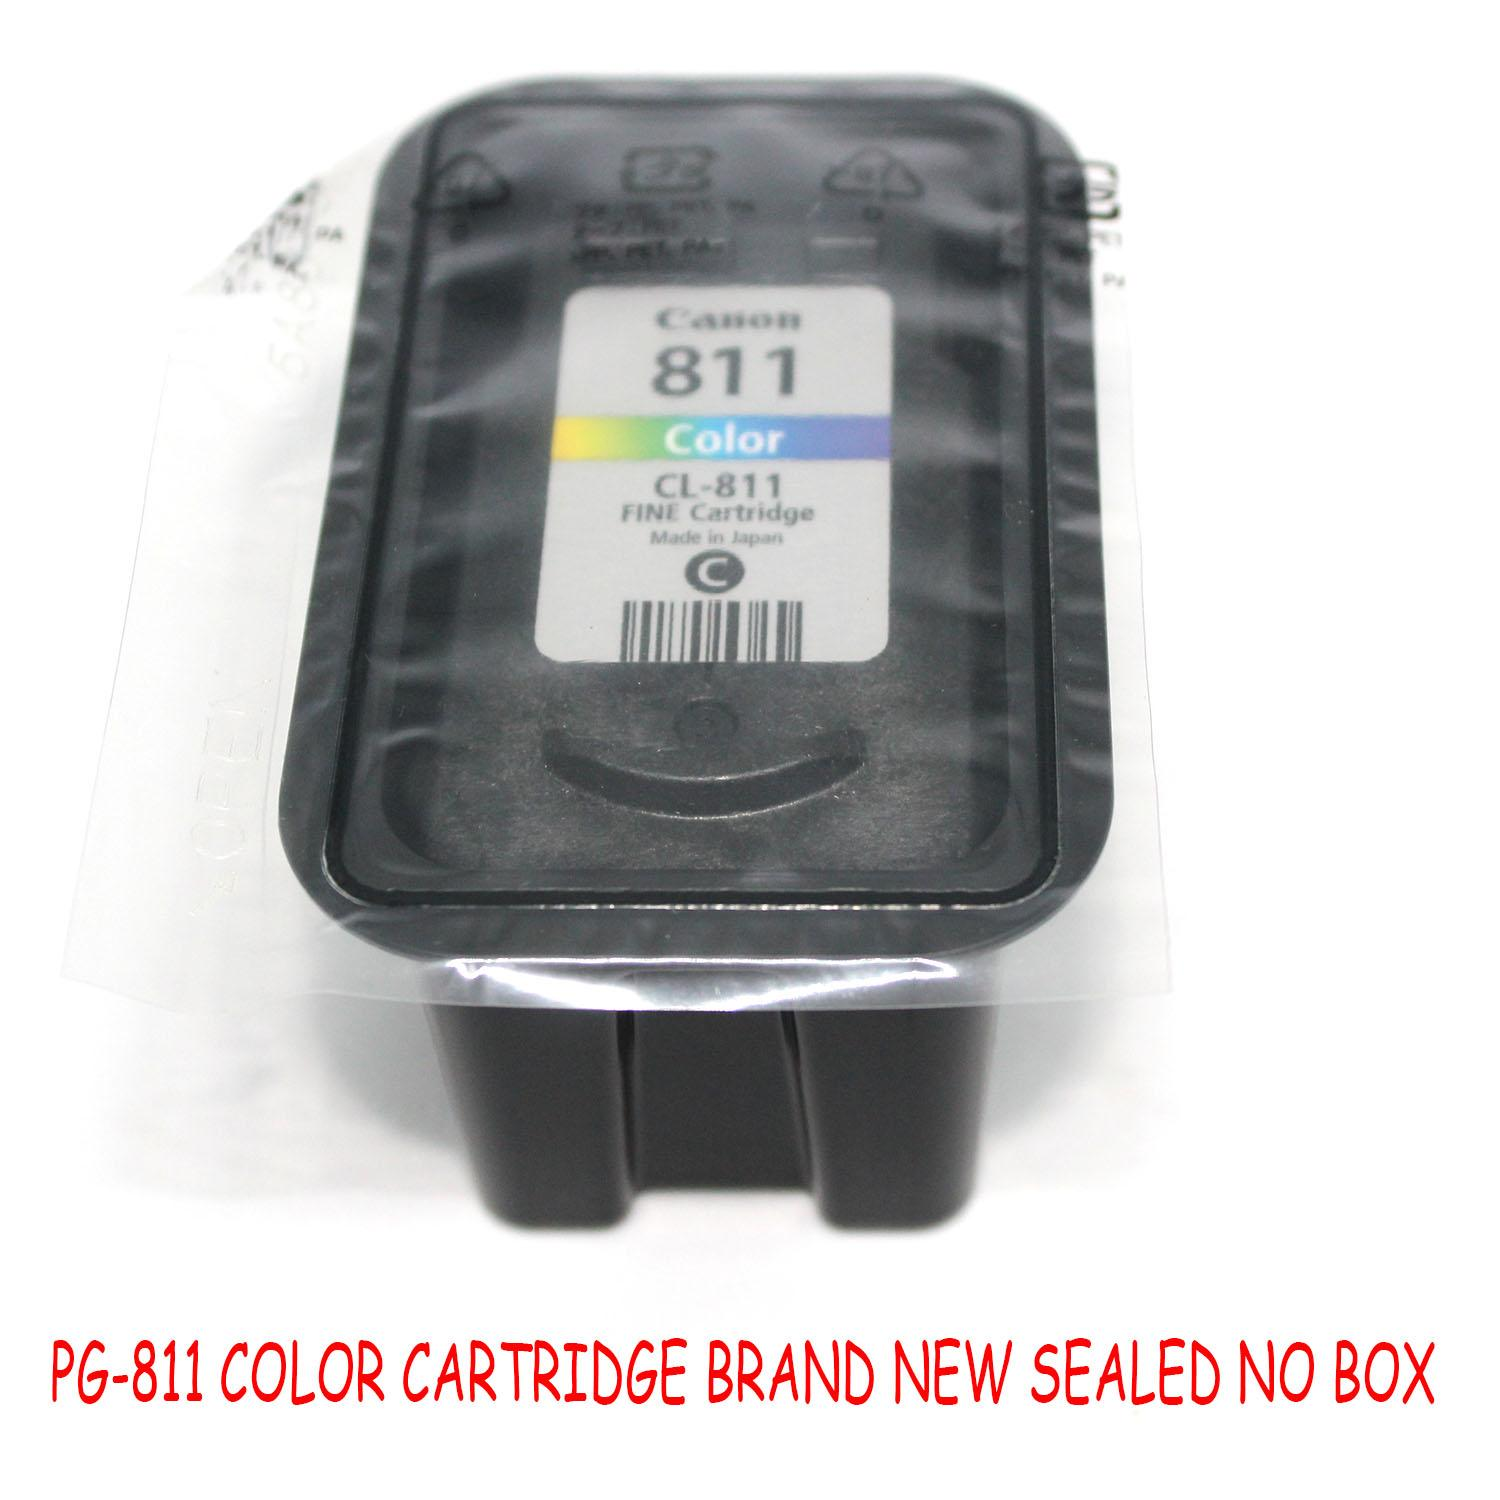 Inkjet Inks For Sale Cartridges Prices Brands Specs In Ink Cartridge Canon Cl811 Original New Pg 811 Color No Box